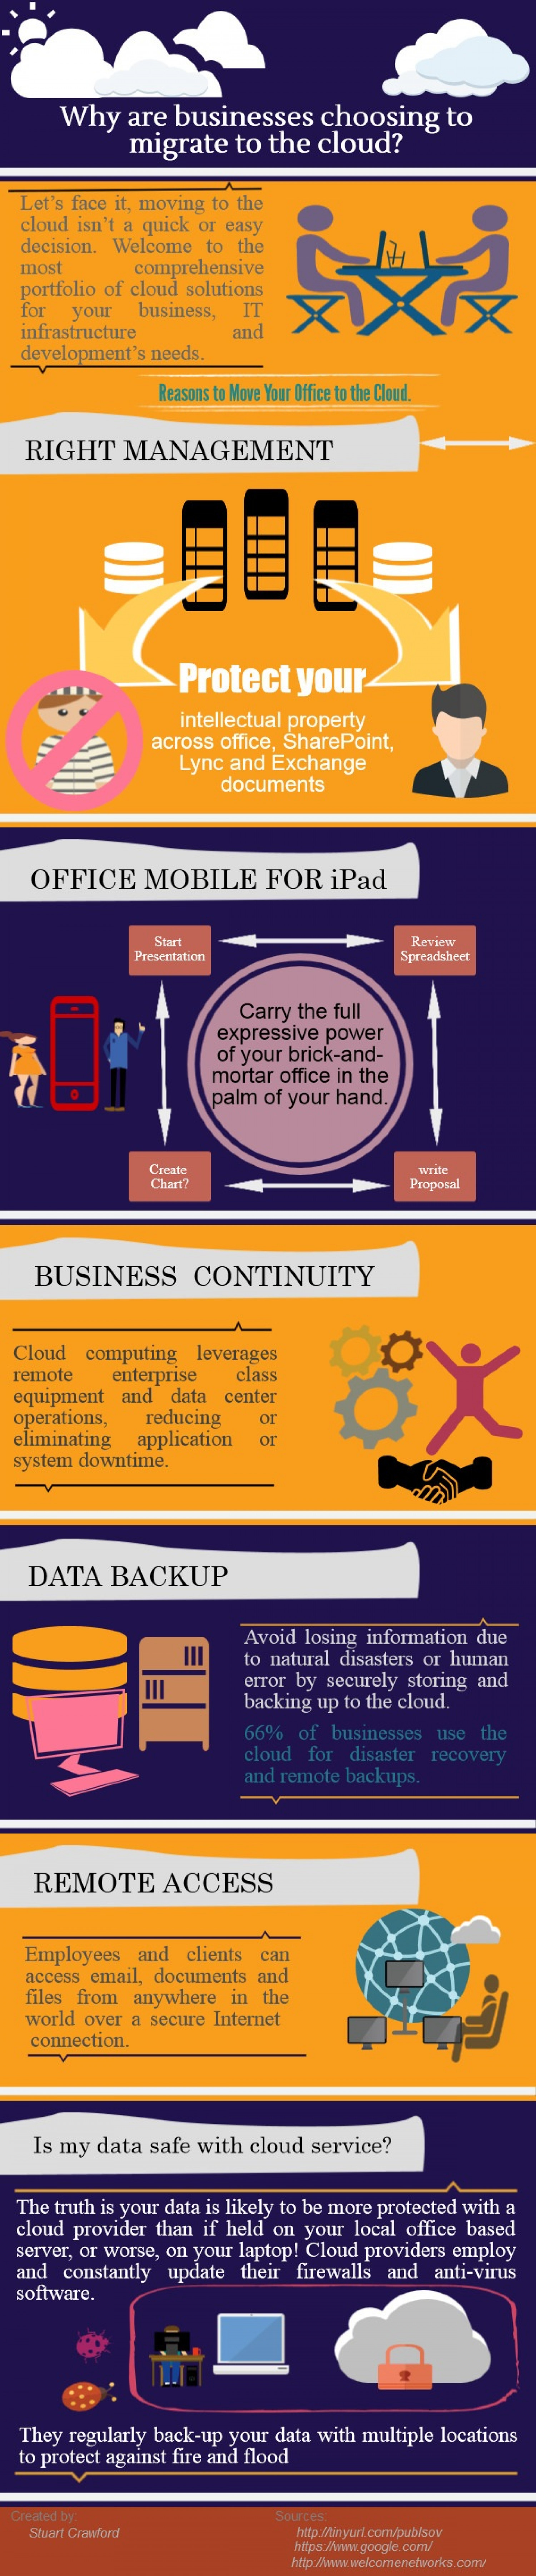 Why are businesses choosing to migrate to the cloud? Infographic